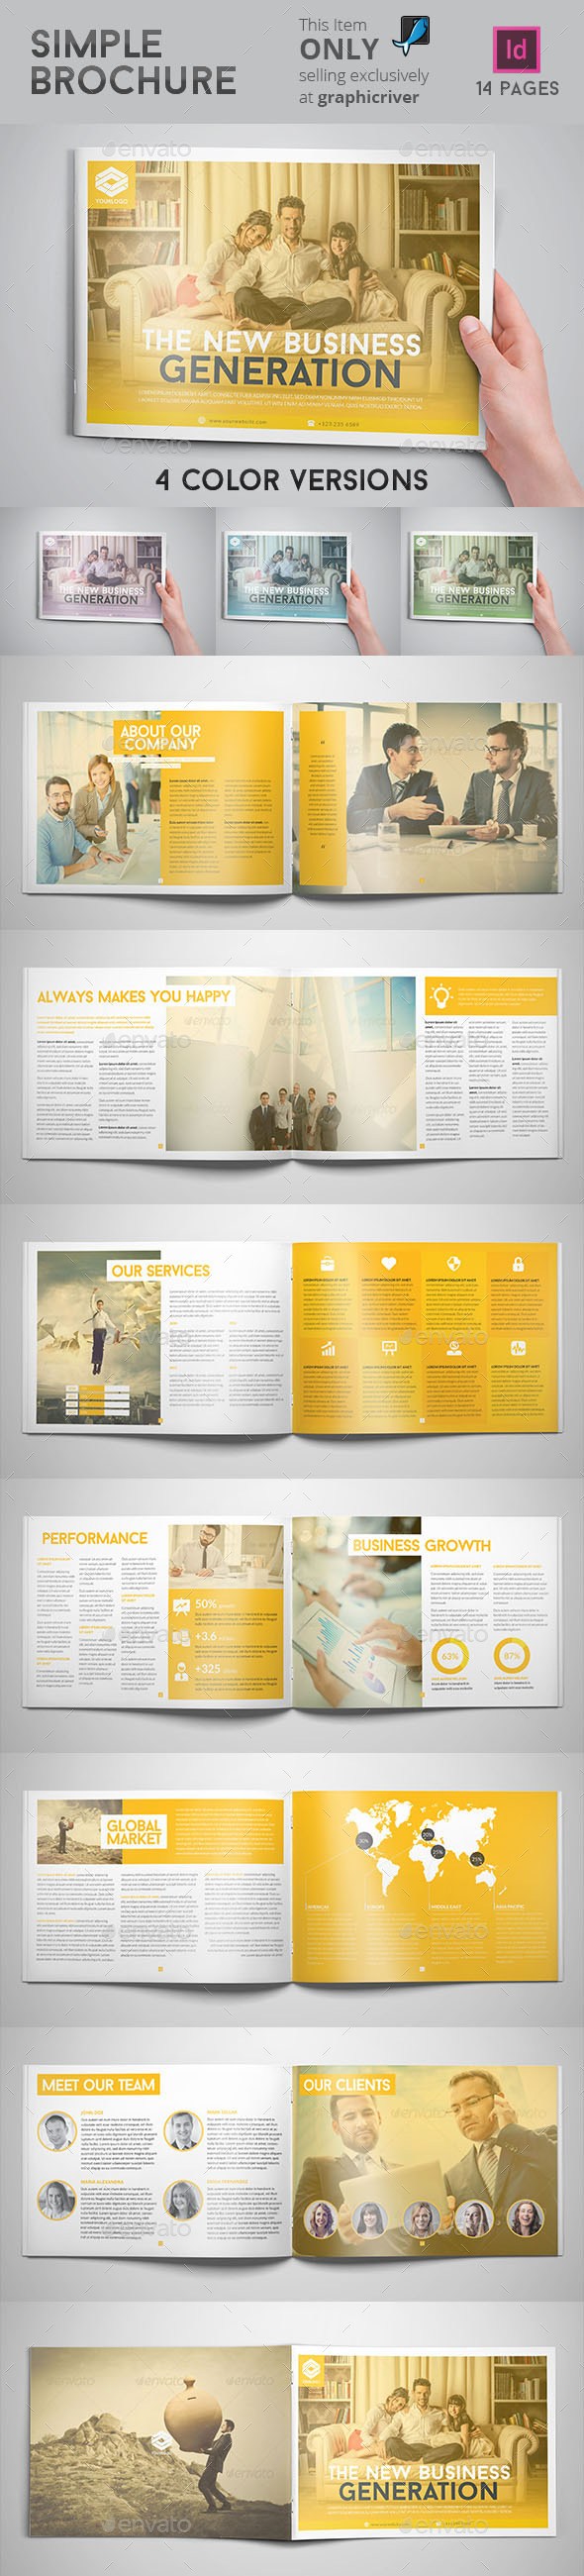 GraphicRiver Simple Brochure 8804613